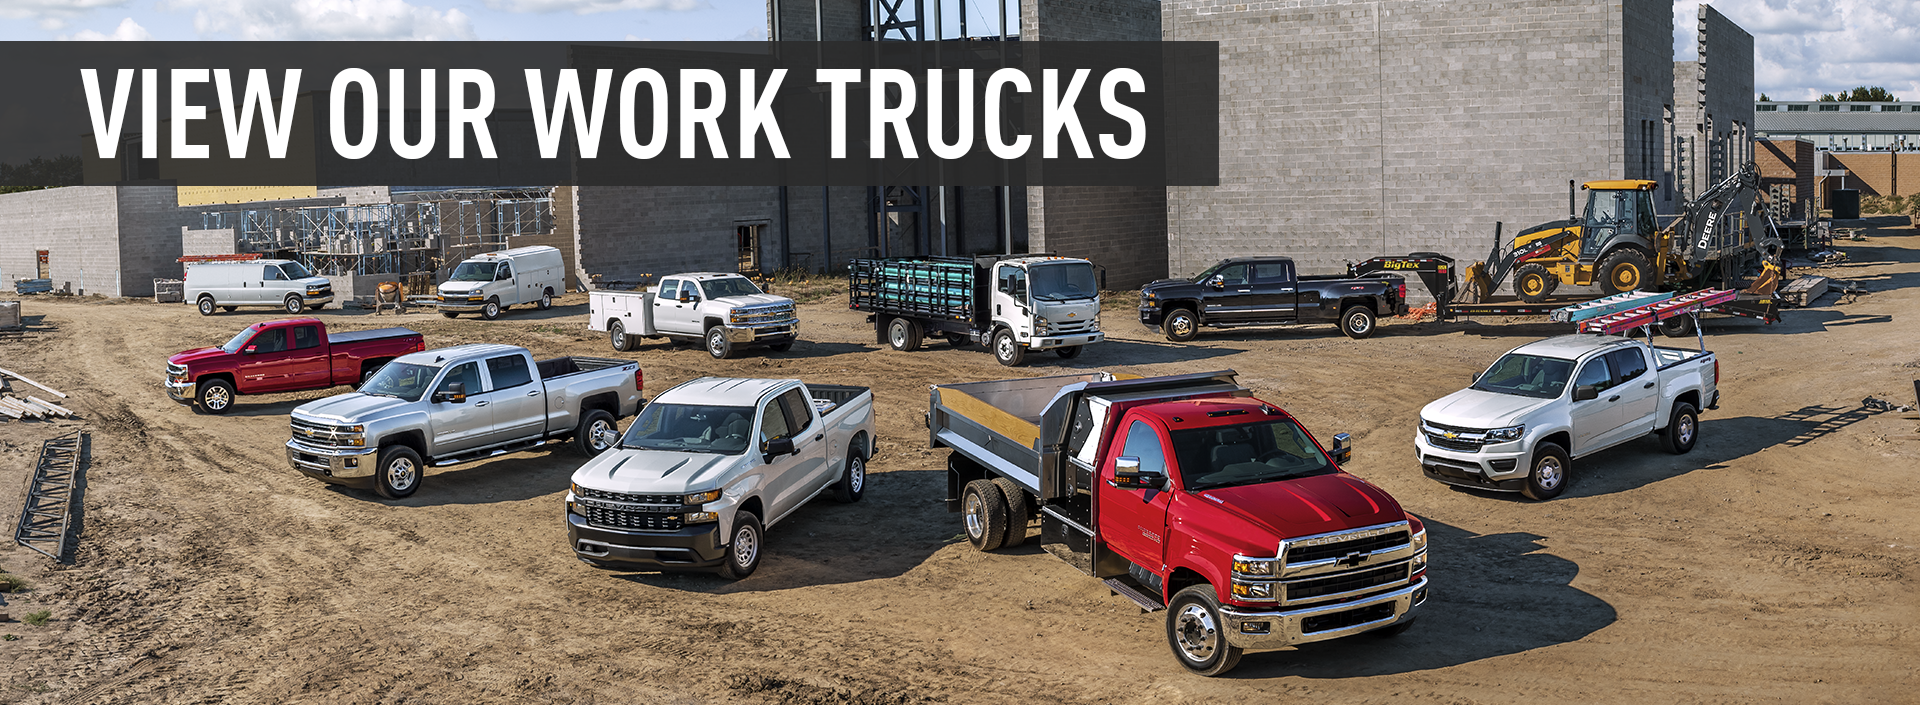 view-our-work-trucks